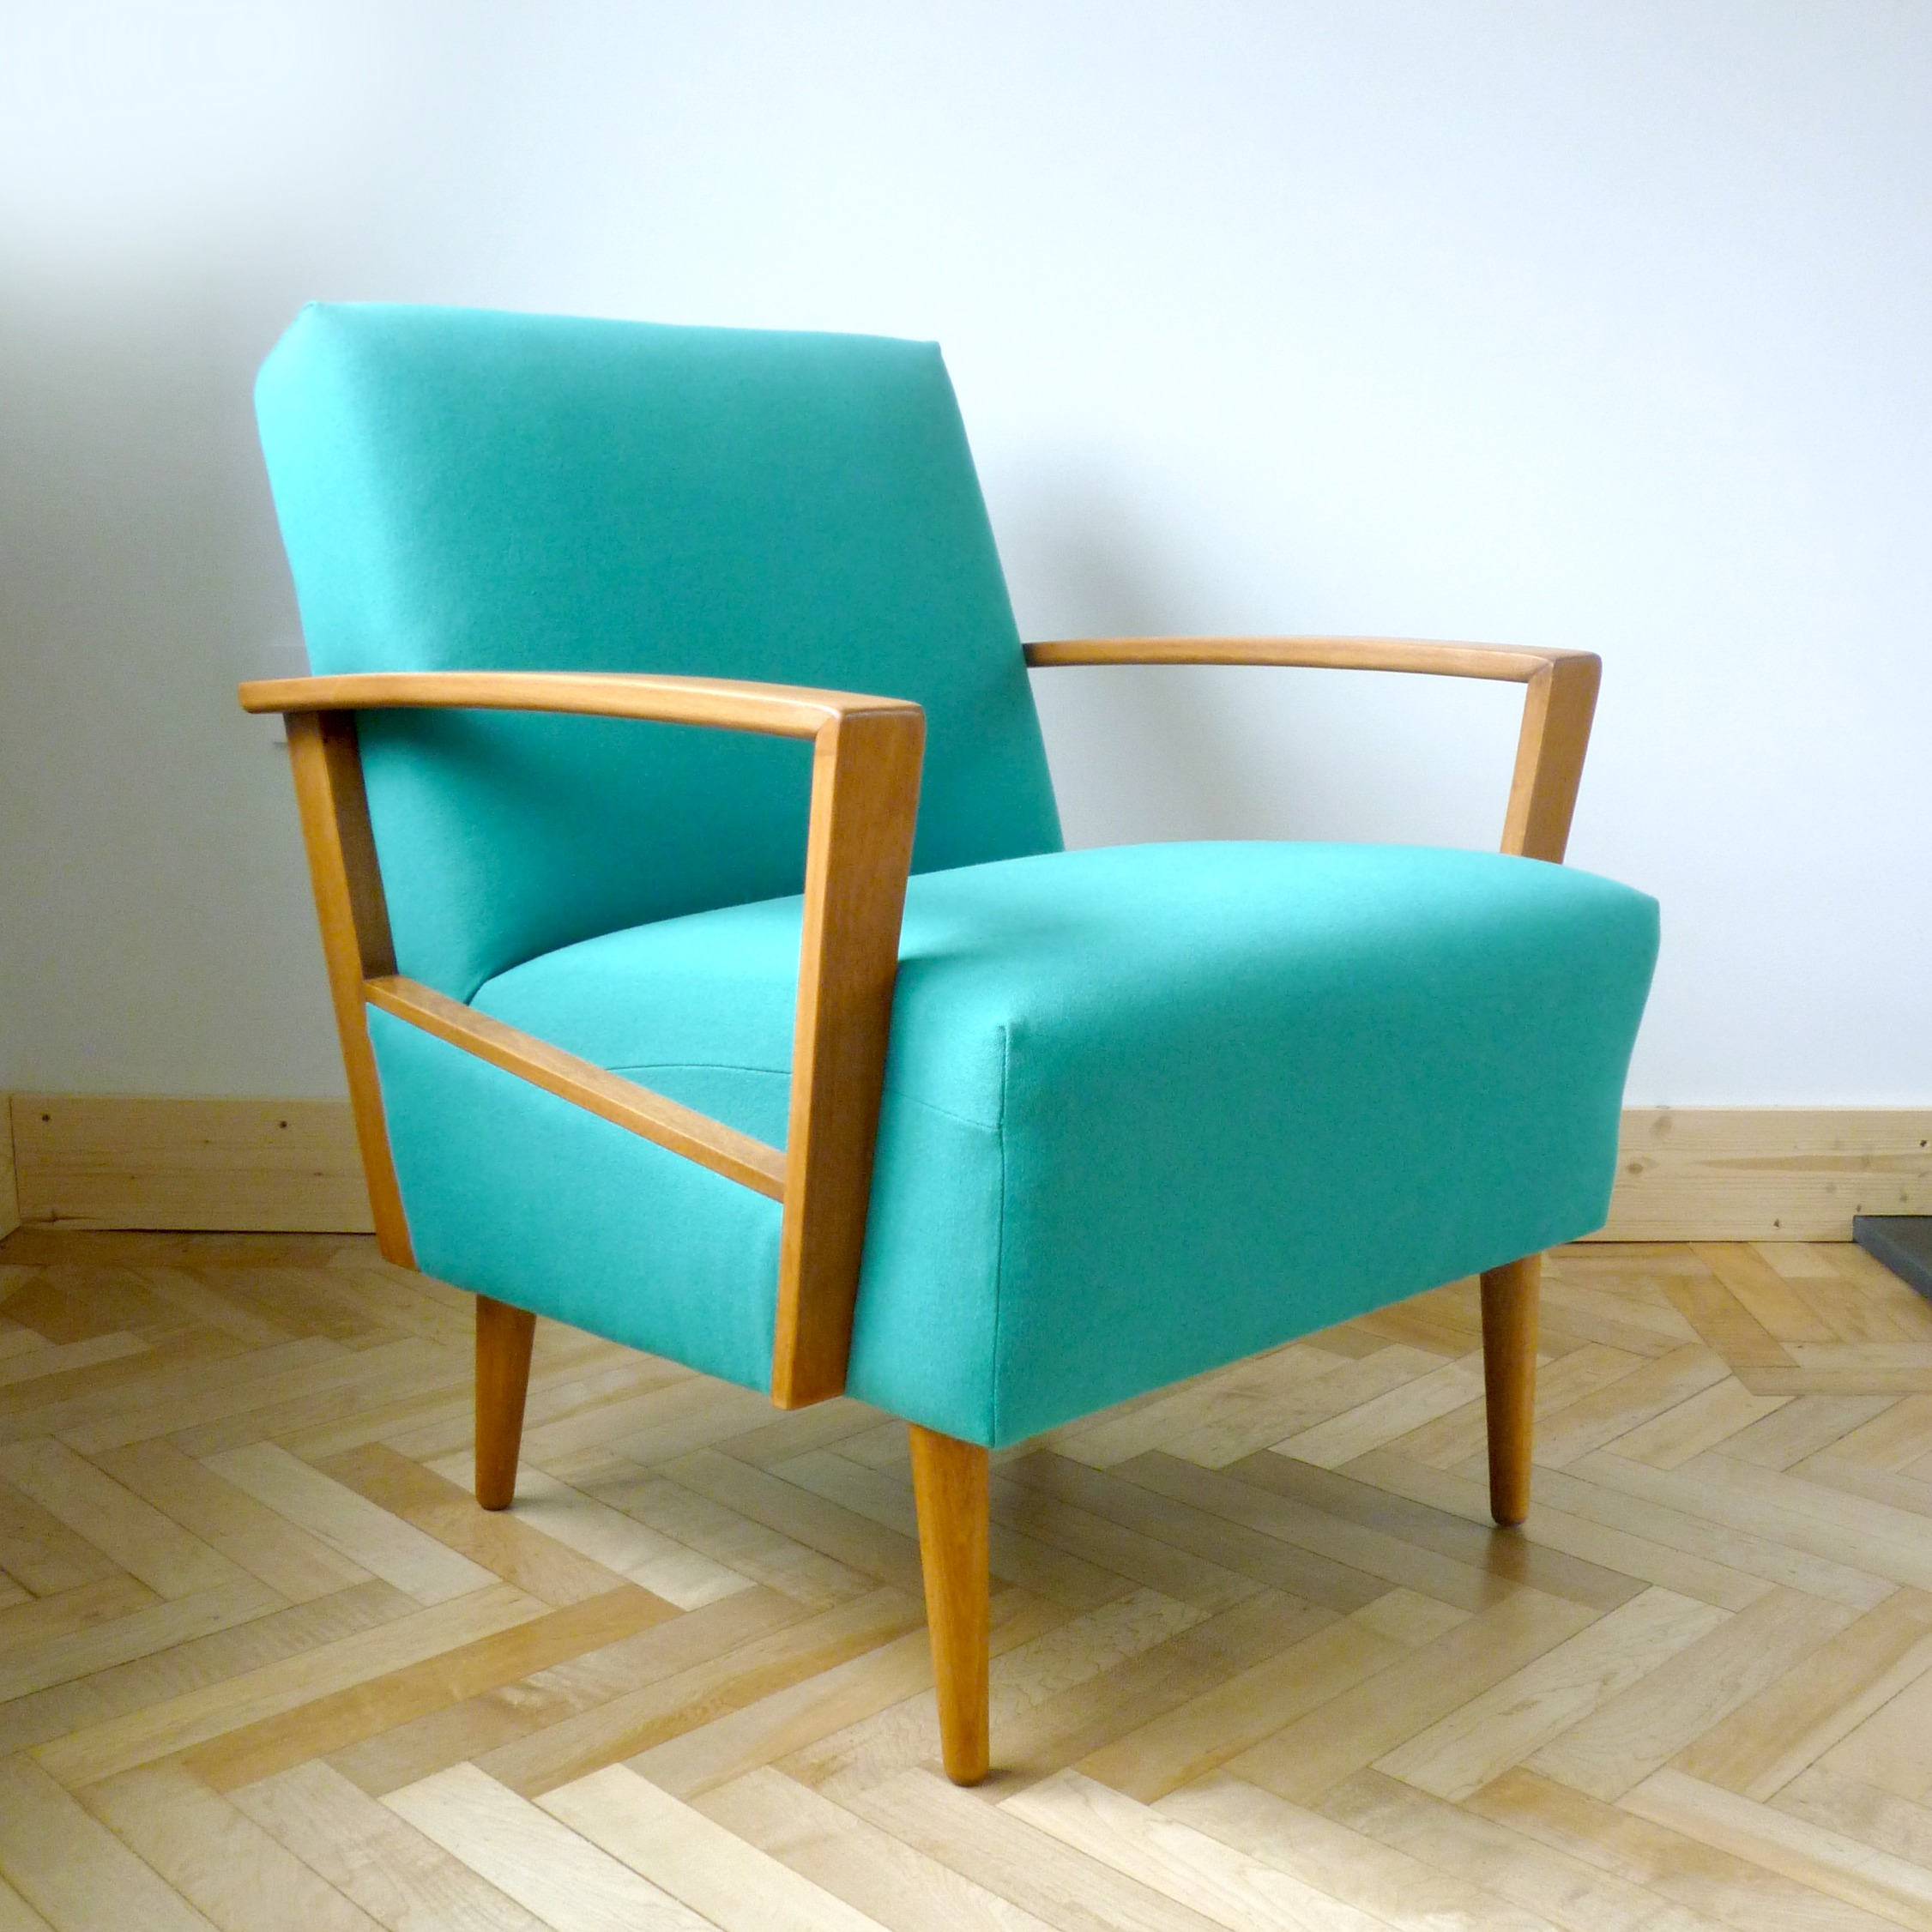 teal retro danish armchair from drab to dreamy florrie bill. Black Bedroom Furniture Sets. Home Design Ideas